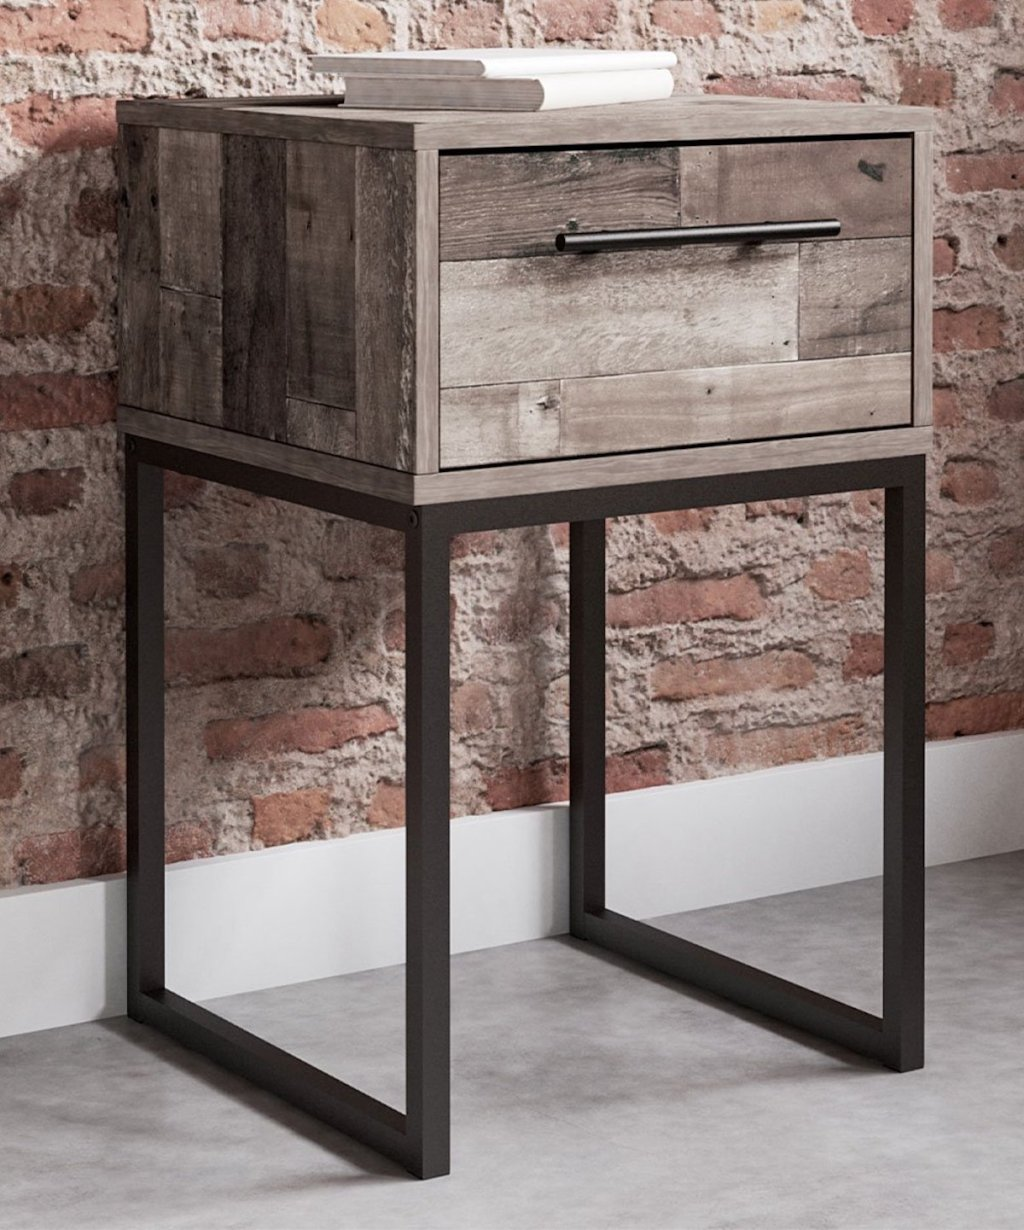 cork looking Signature Design by Ashley Furniture nightstand